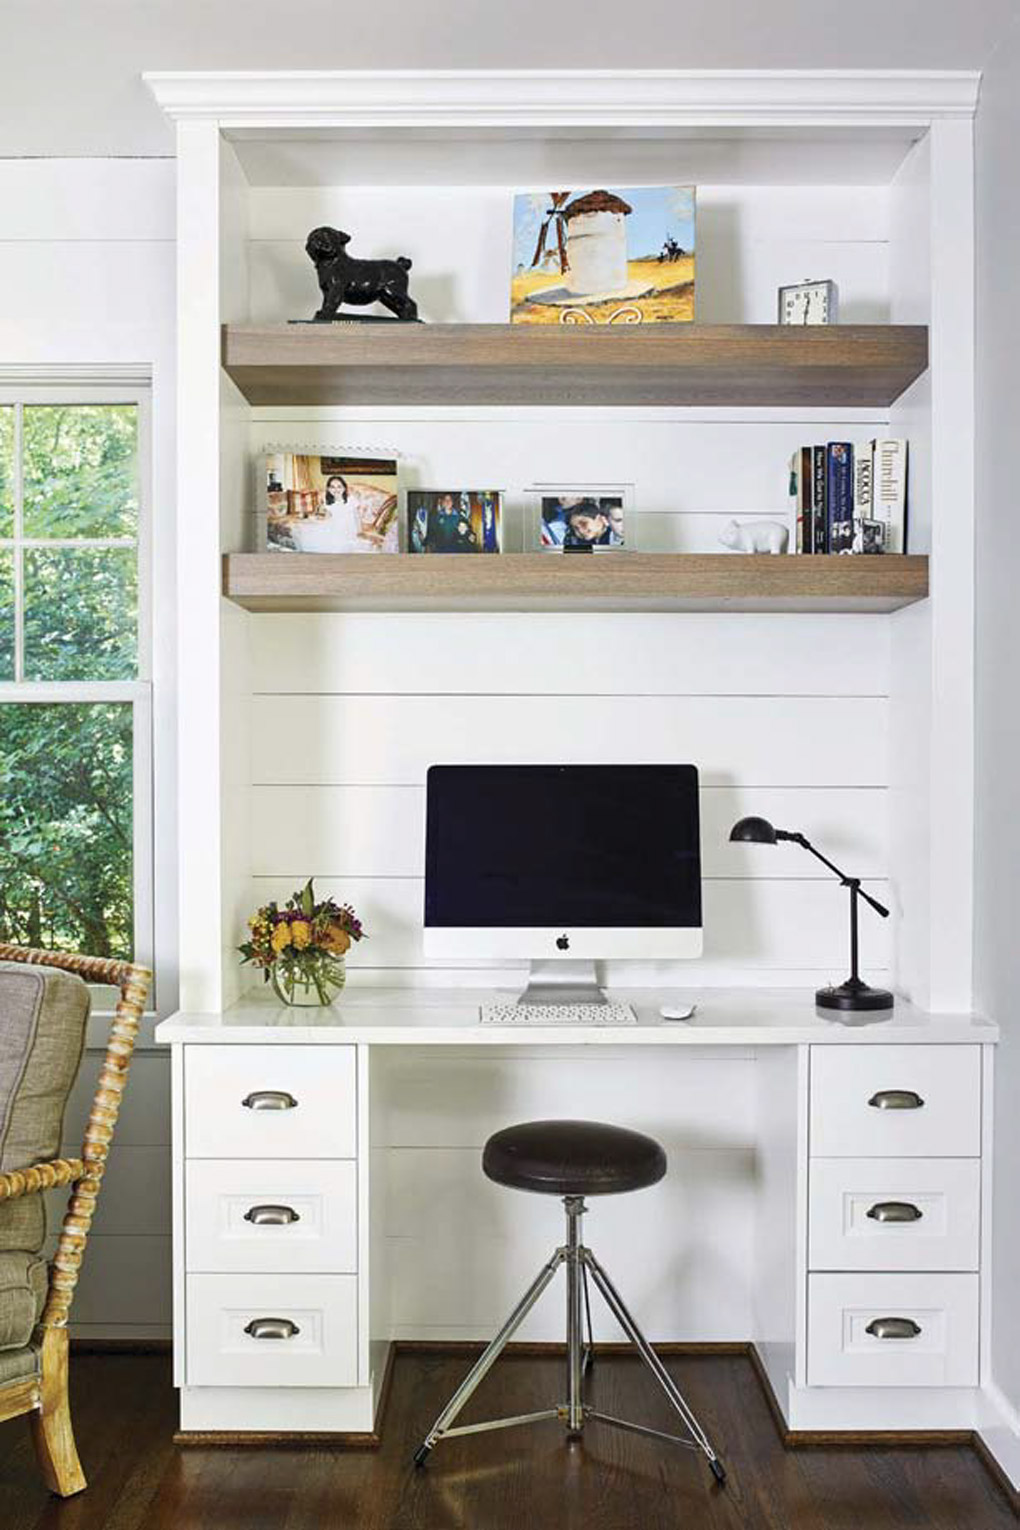 Custom white built-in with shelving, desk and small stool to sit at the computer.